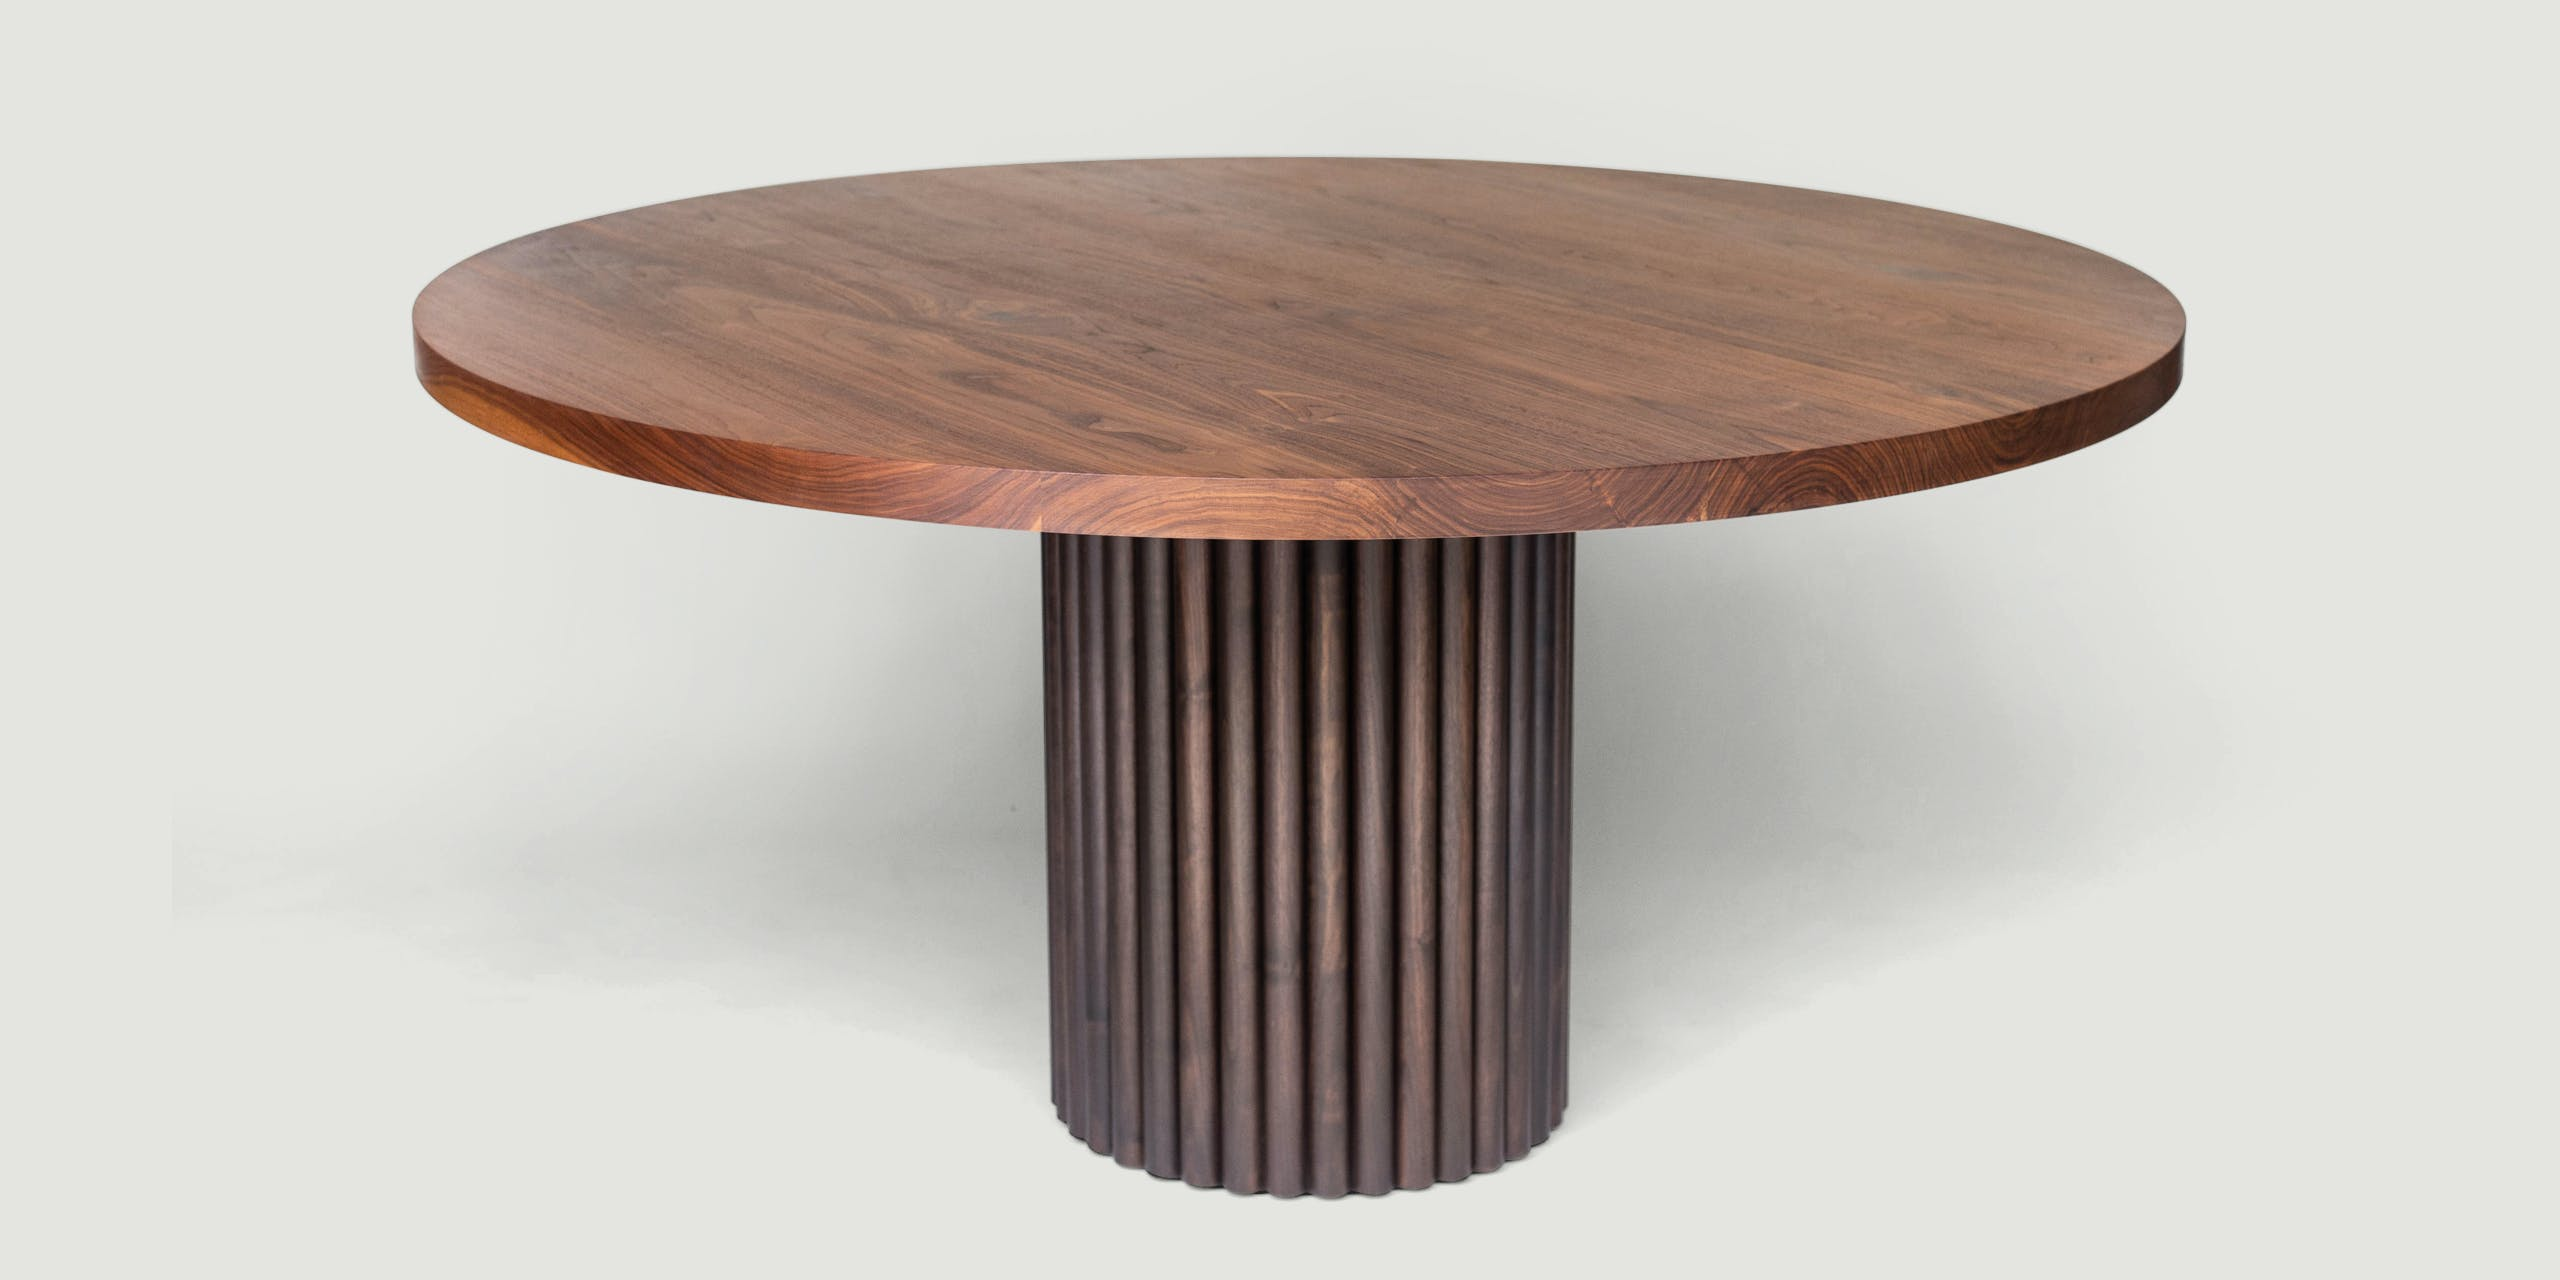 Ribbed table by kate duncan main.jpg?ixlib=rails 2.1